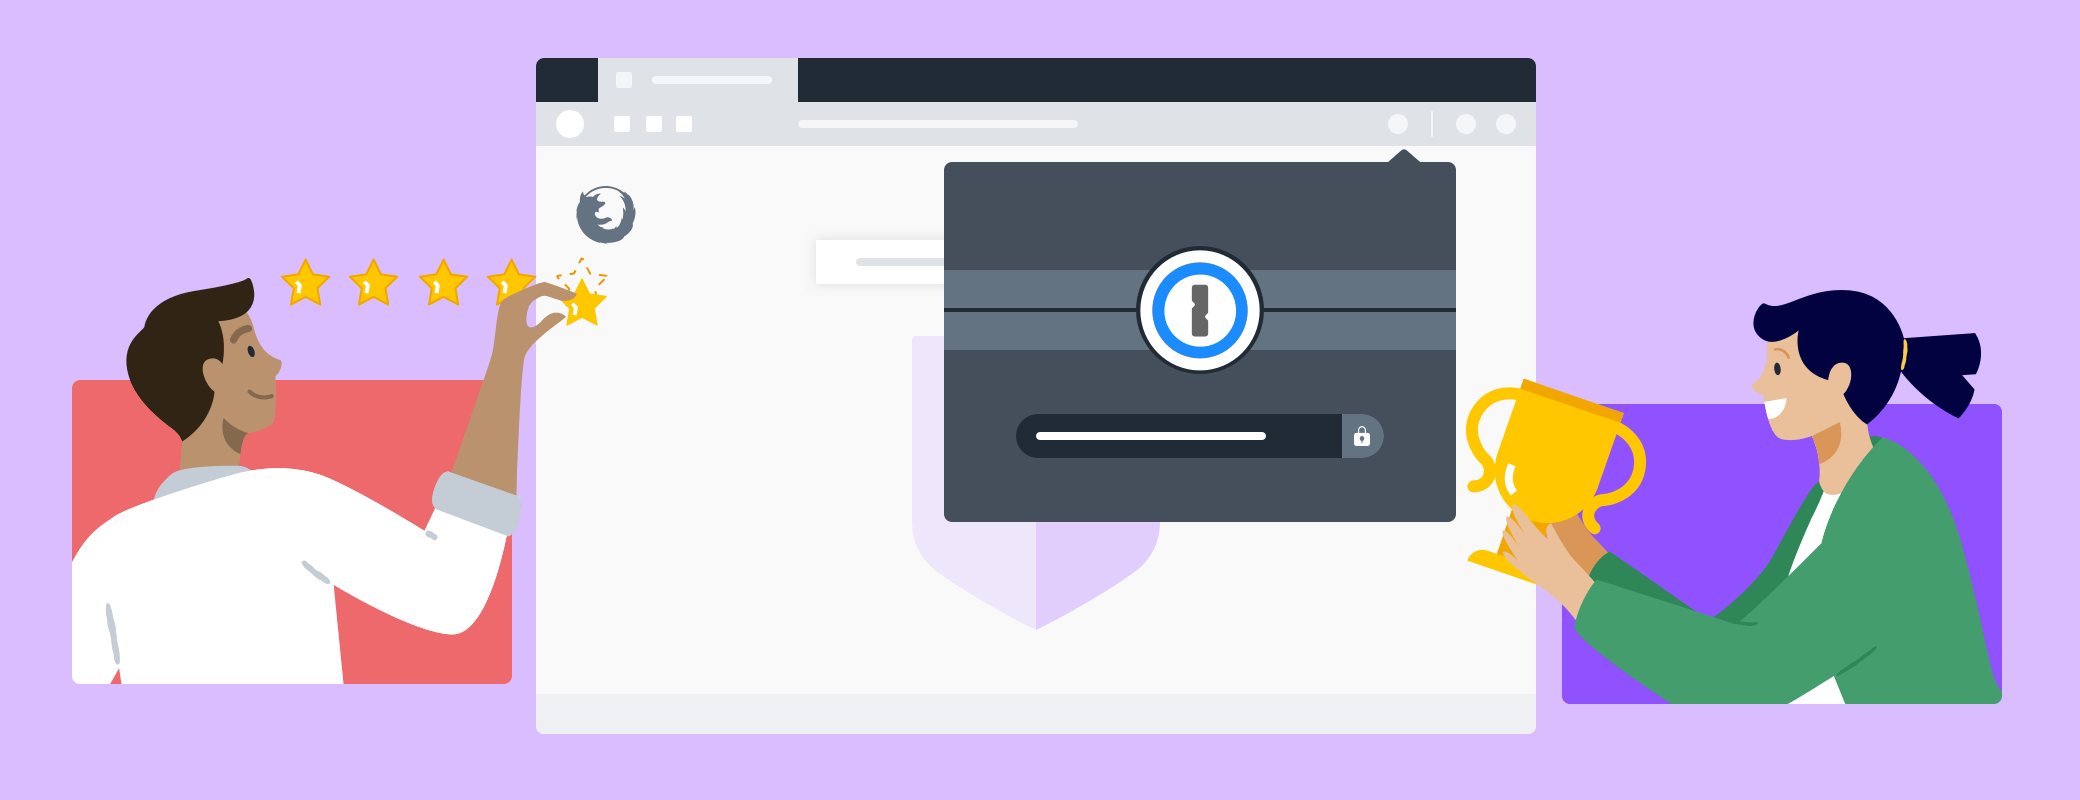 Mozilla has selected 1Password X as a Recommended Extension for Firefox